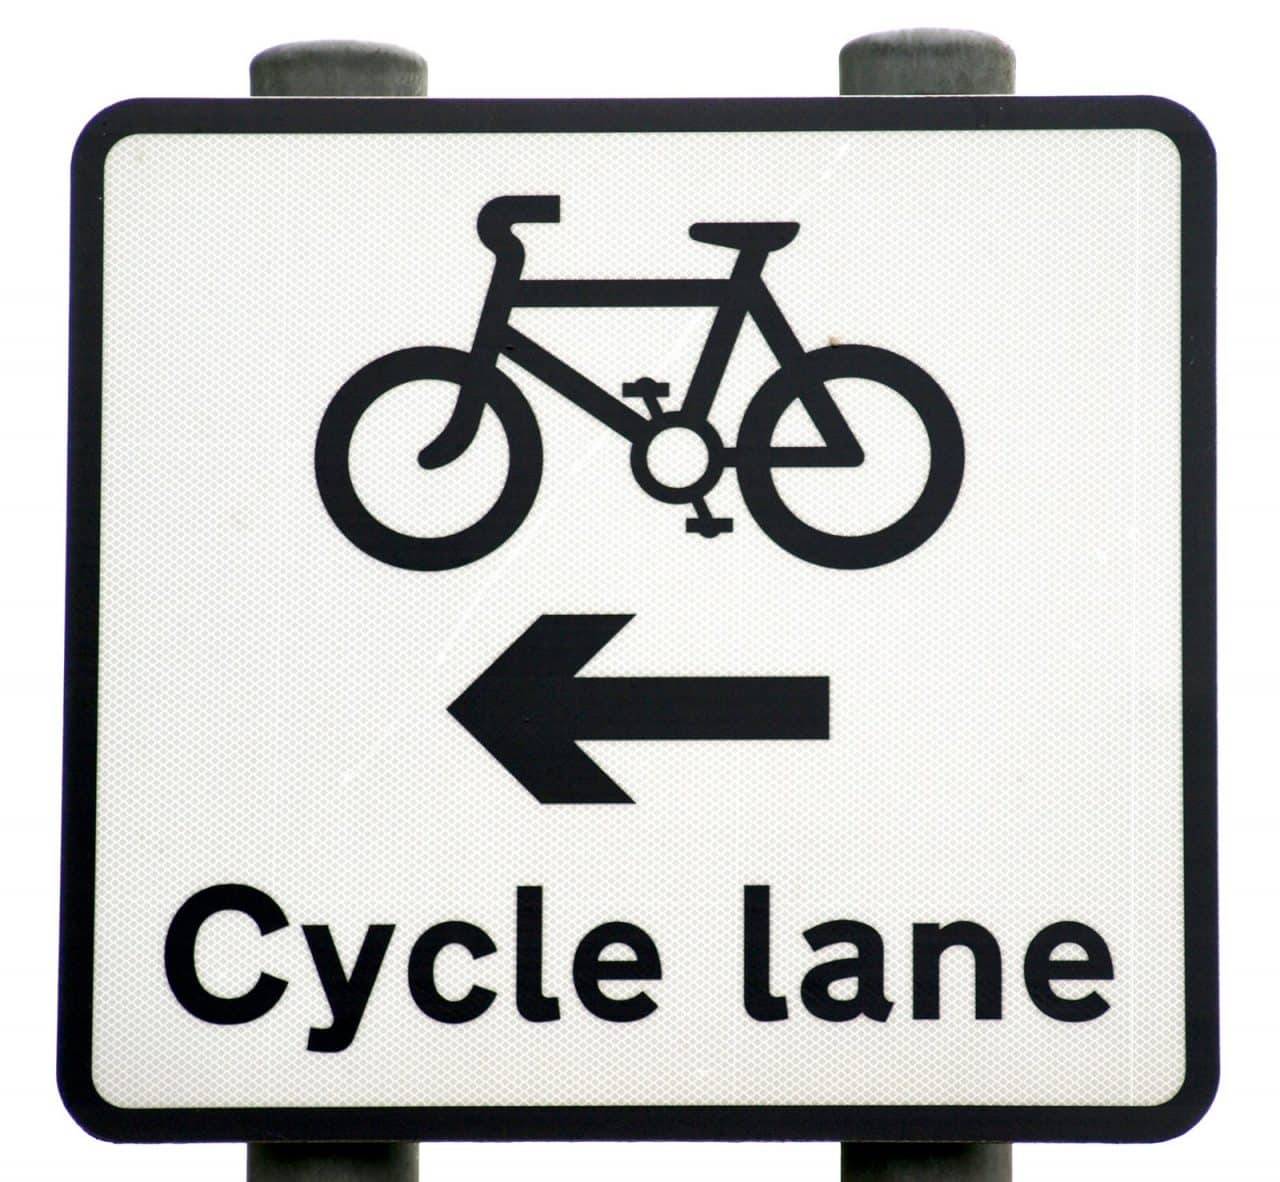 Victory for Southend cyclists as pedestrians are BANNED from all borough cycle lanes.